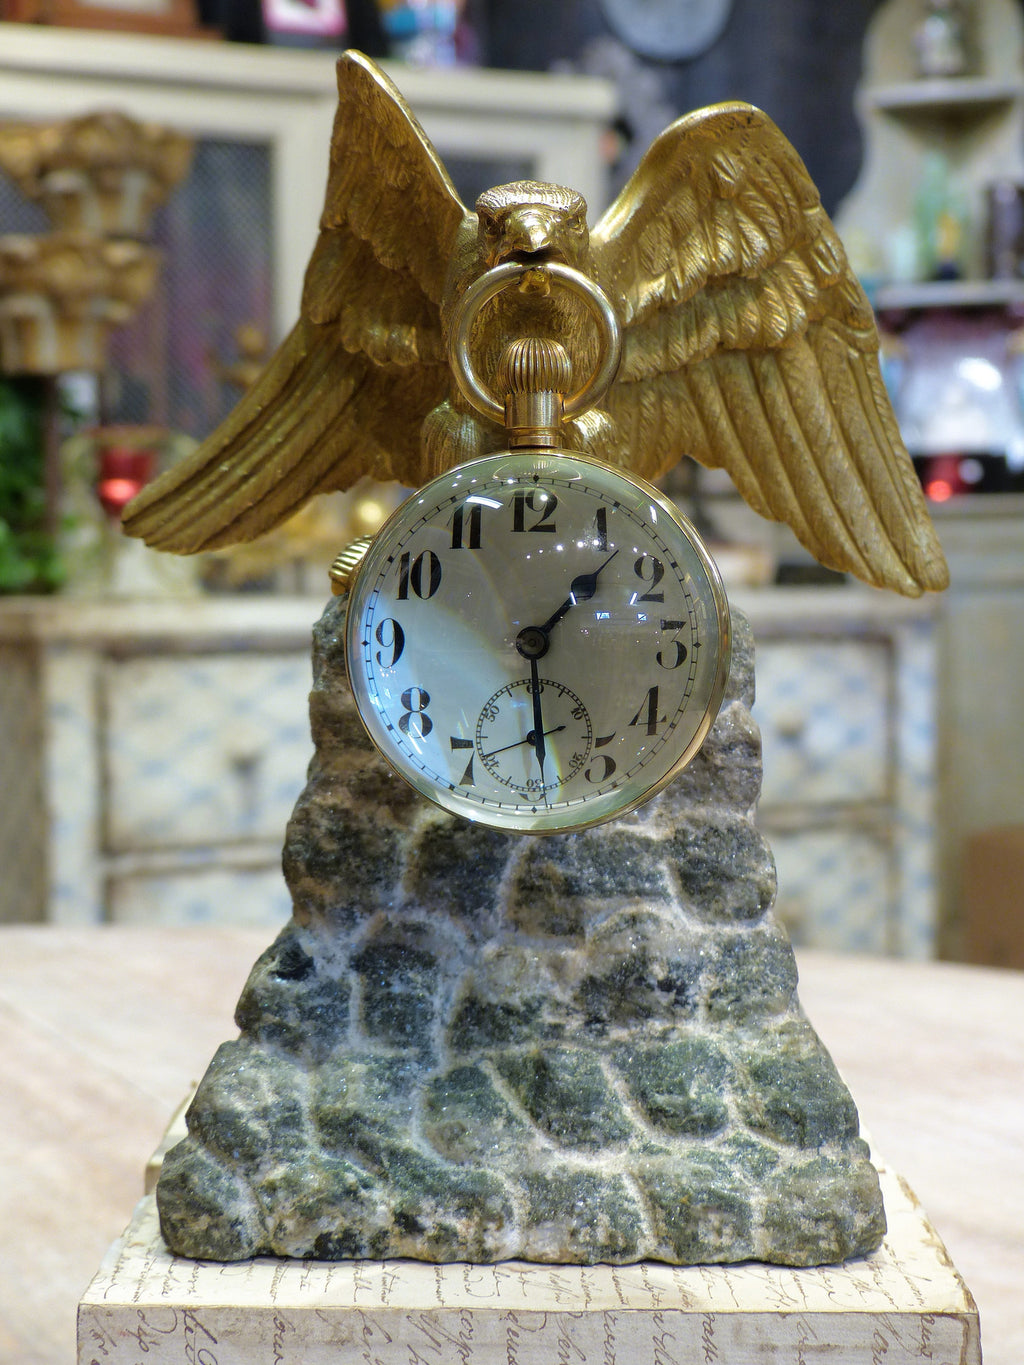 Late 19th century gilded eagle table clock